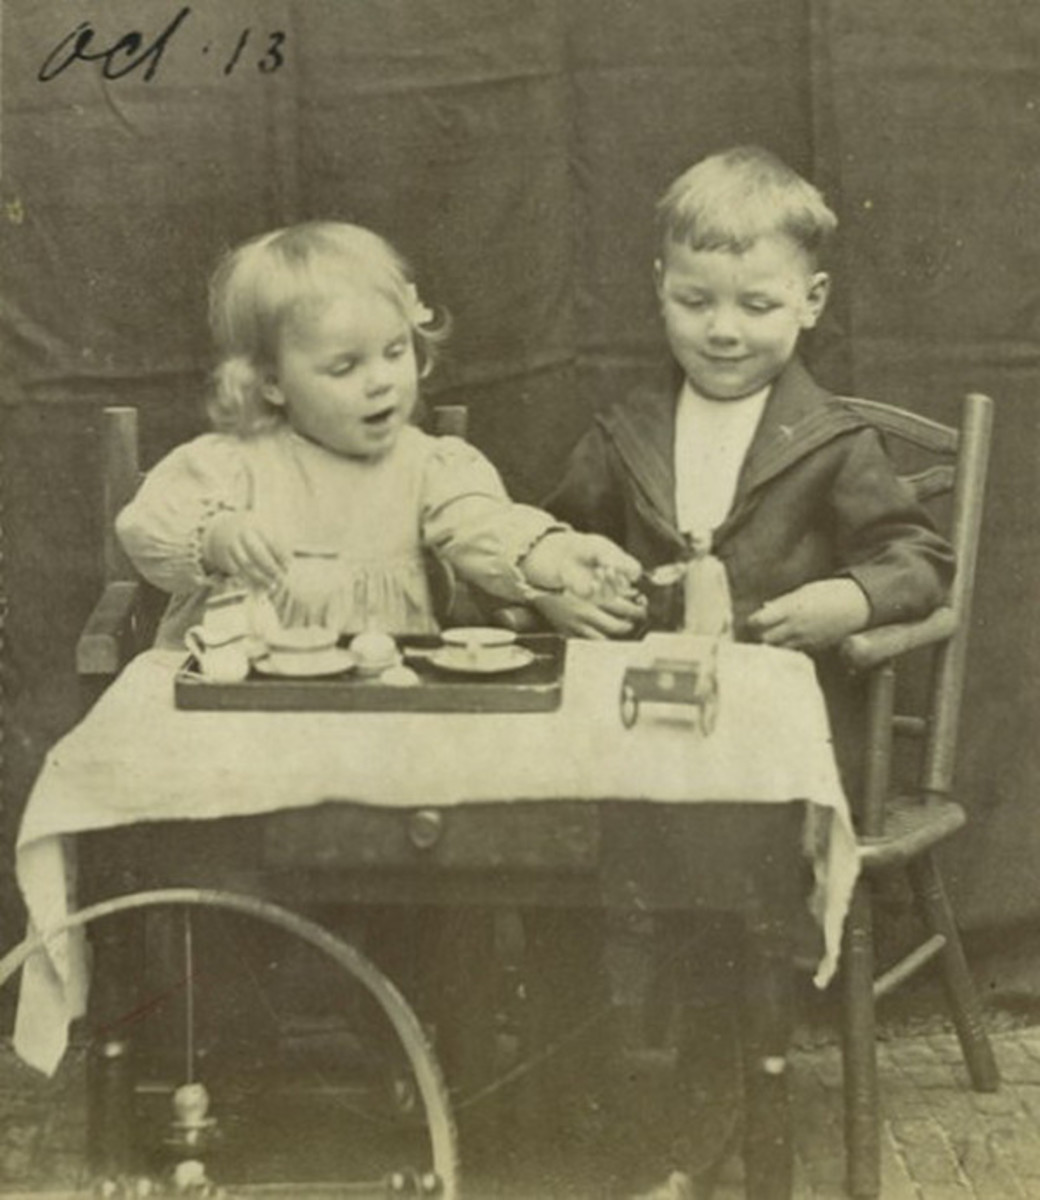 Synco with his sister Heleen